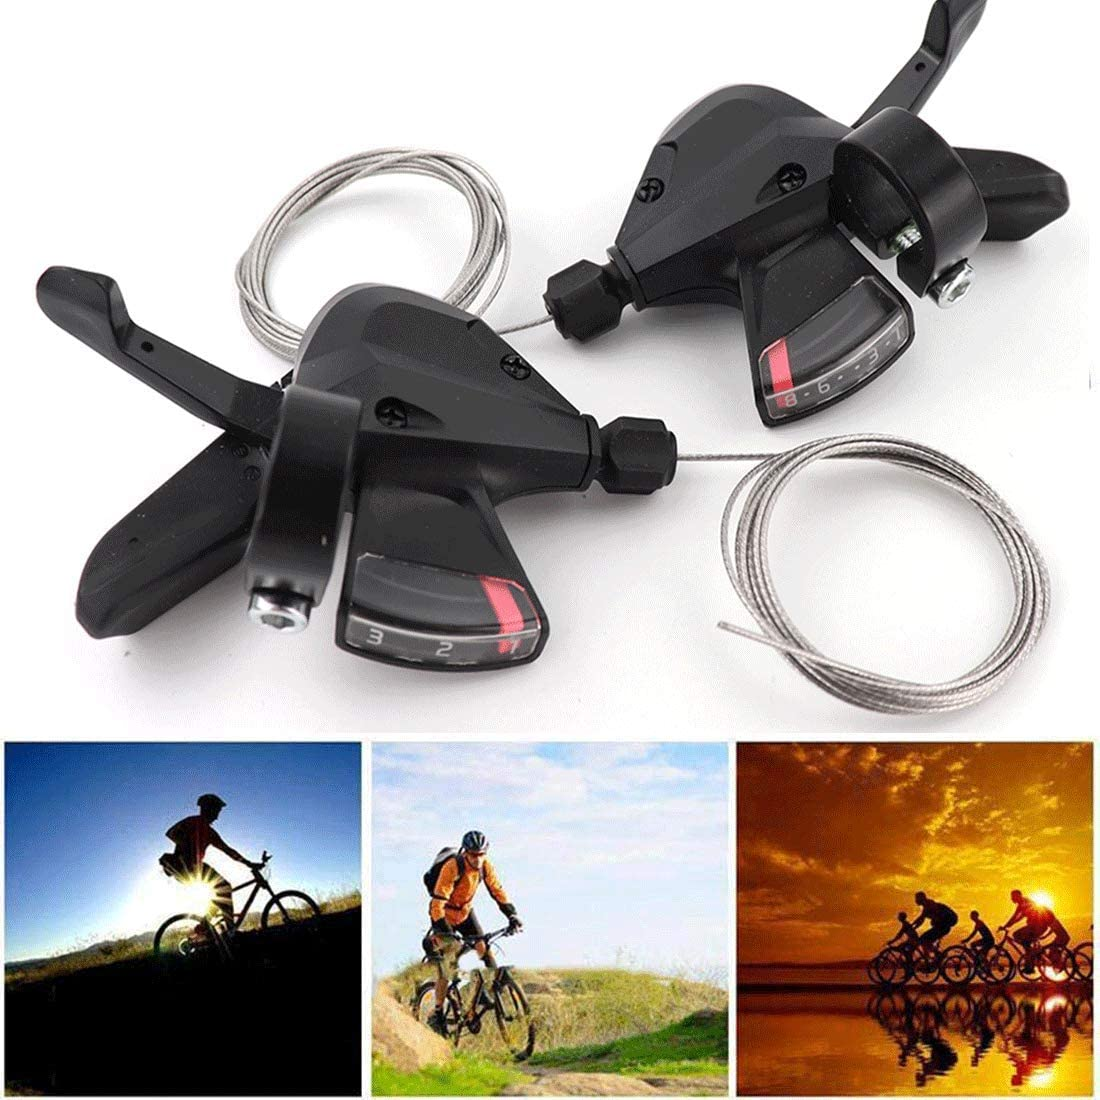 Trigger shifters are better for gentle rides because 2 of your fingers need to be off-grip